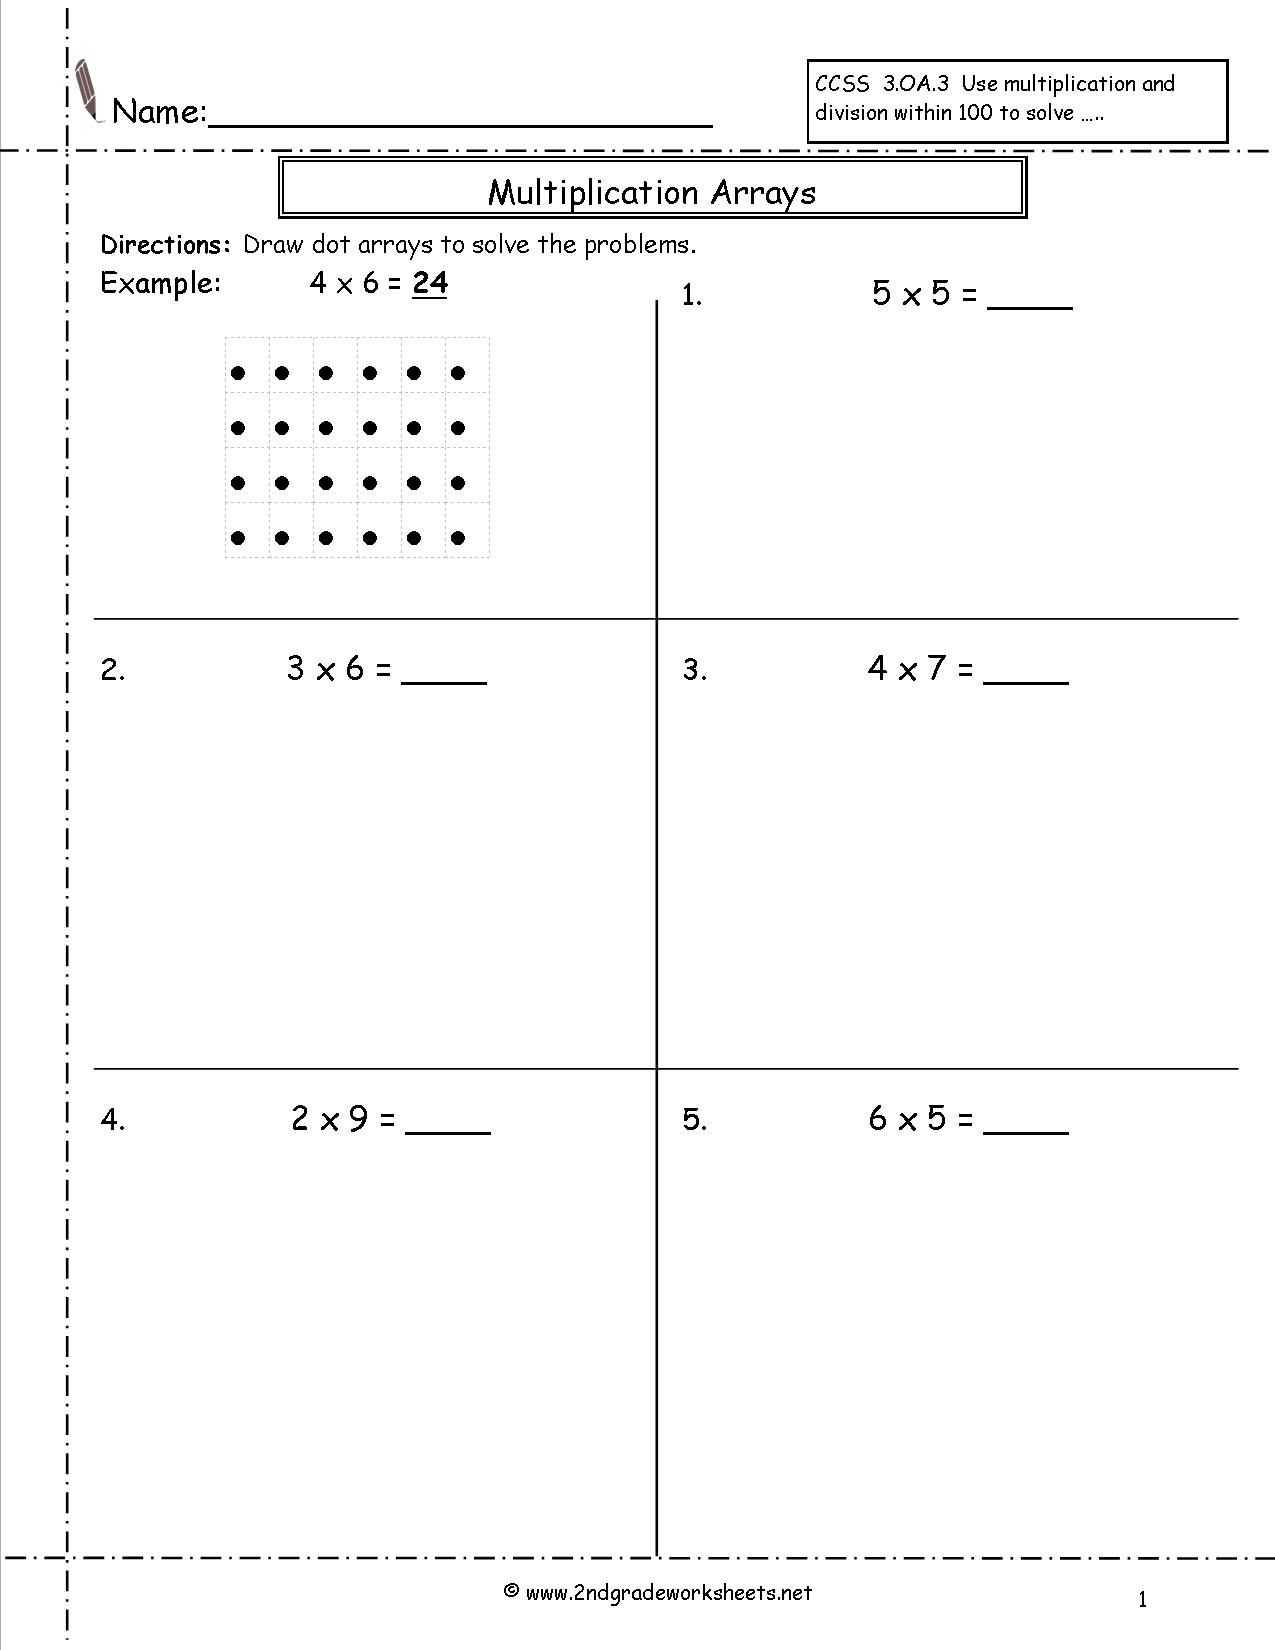 Power to A Power Worksheet with 2s Multiplication Worksheets Best 2 5 and 10 Times Table